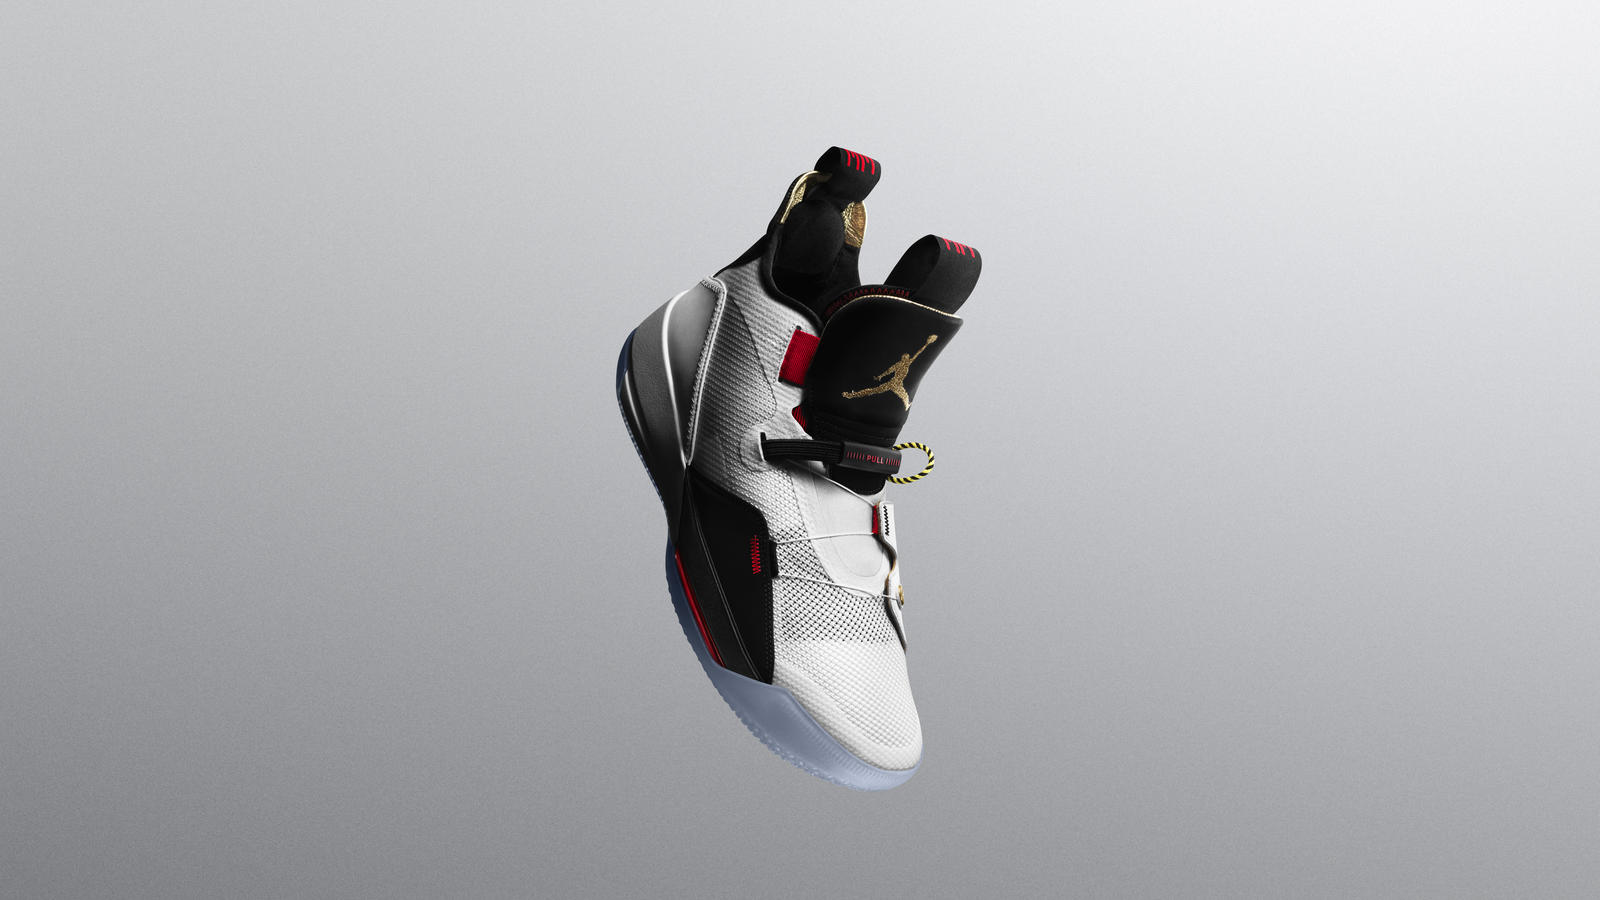 2c5958912f202b Lock-In and Prepare to Fly with the Air Jordan XXXIII - Nike News